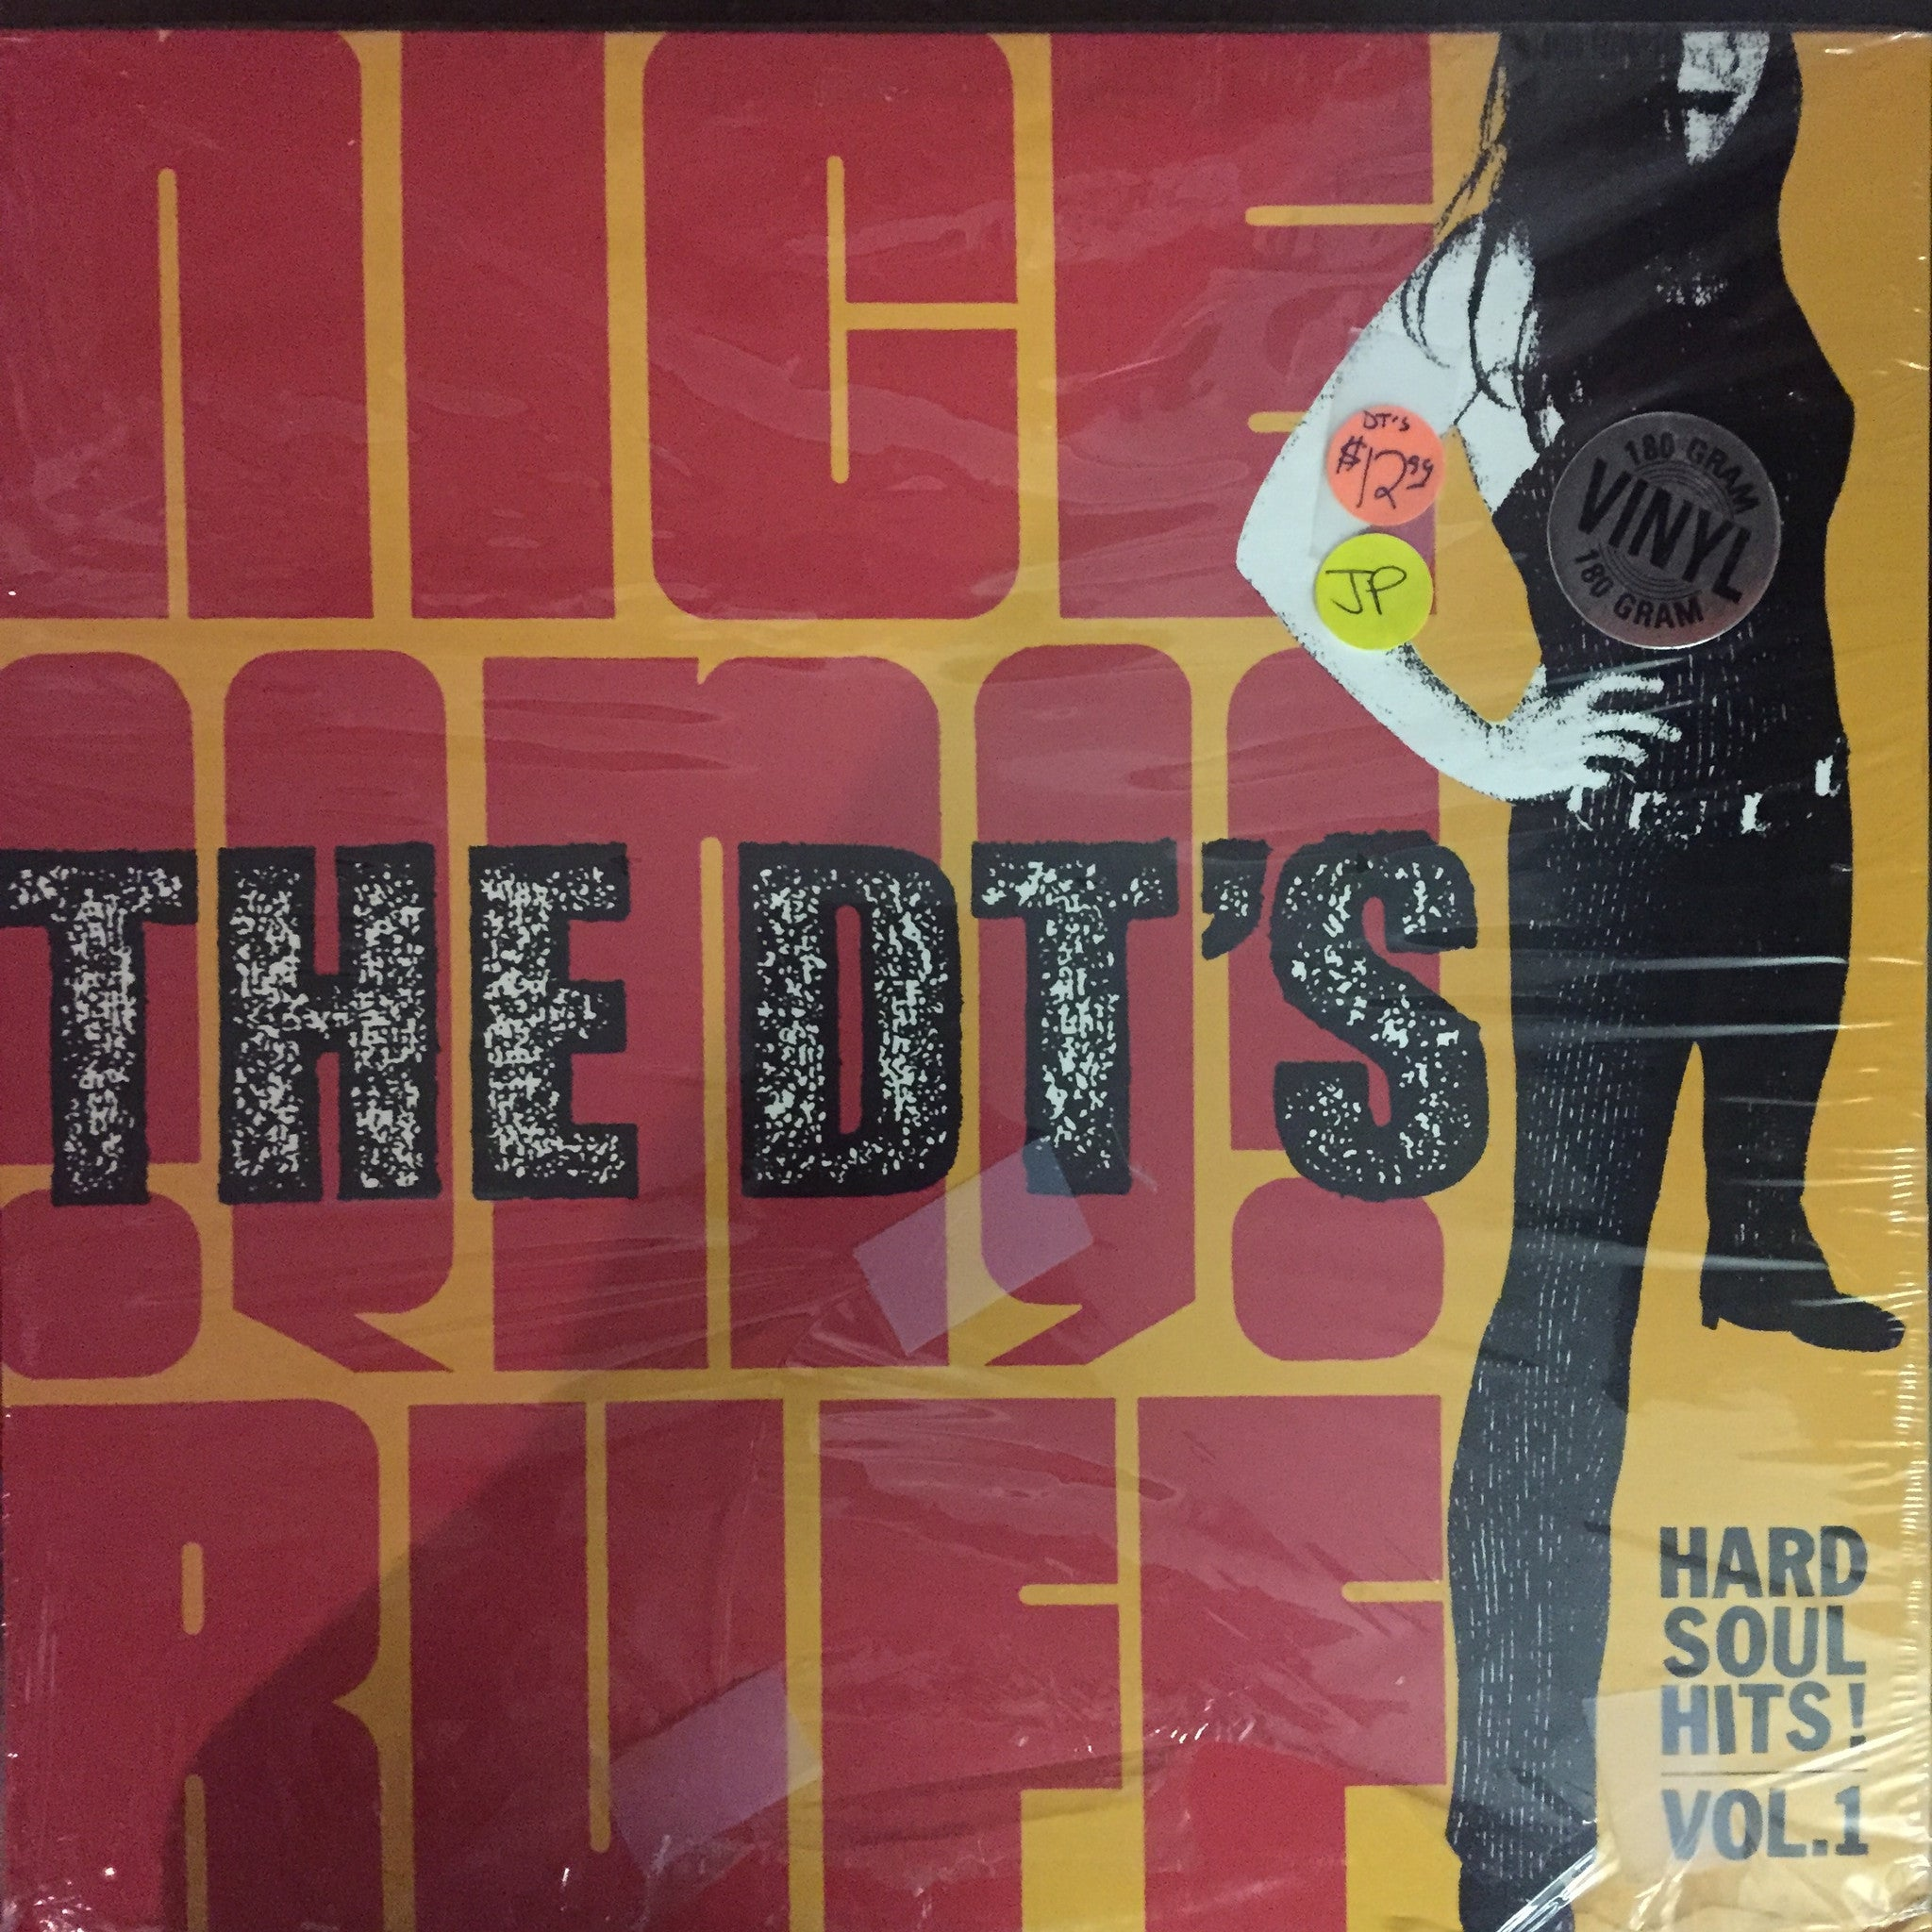 The DT's - Nice 'n' Ruff-Hard Soul Hits! Vol. 1 LP (GH-1136 - New and Sealed)